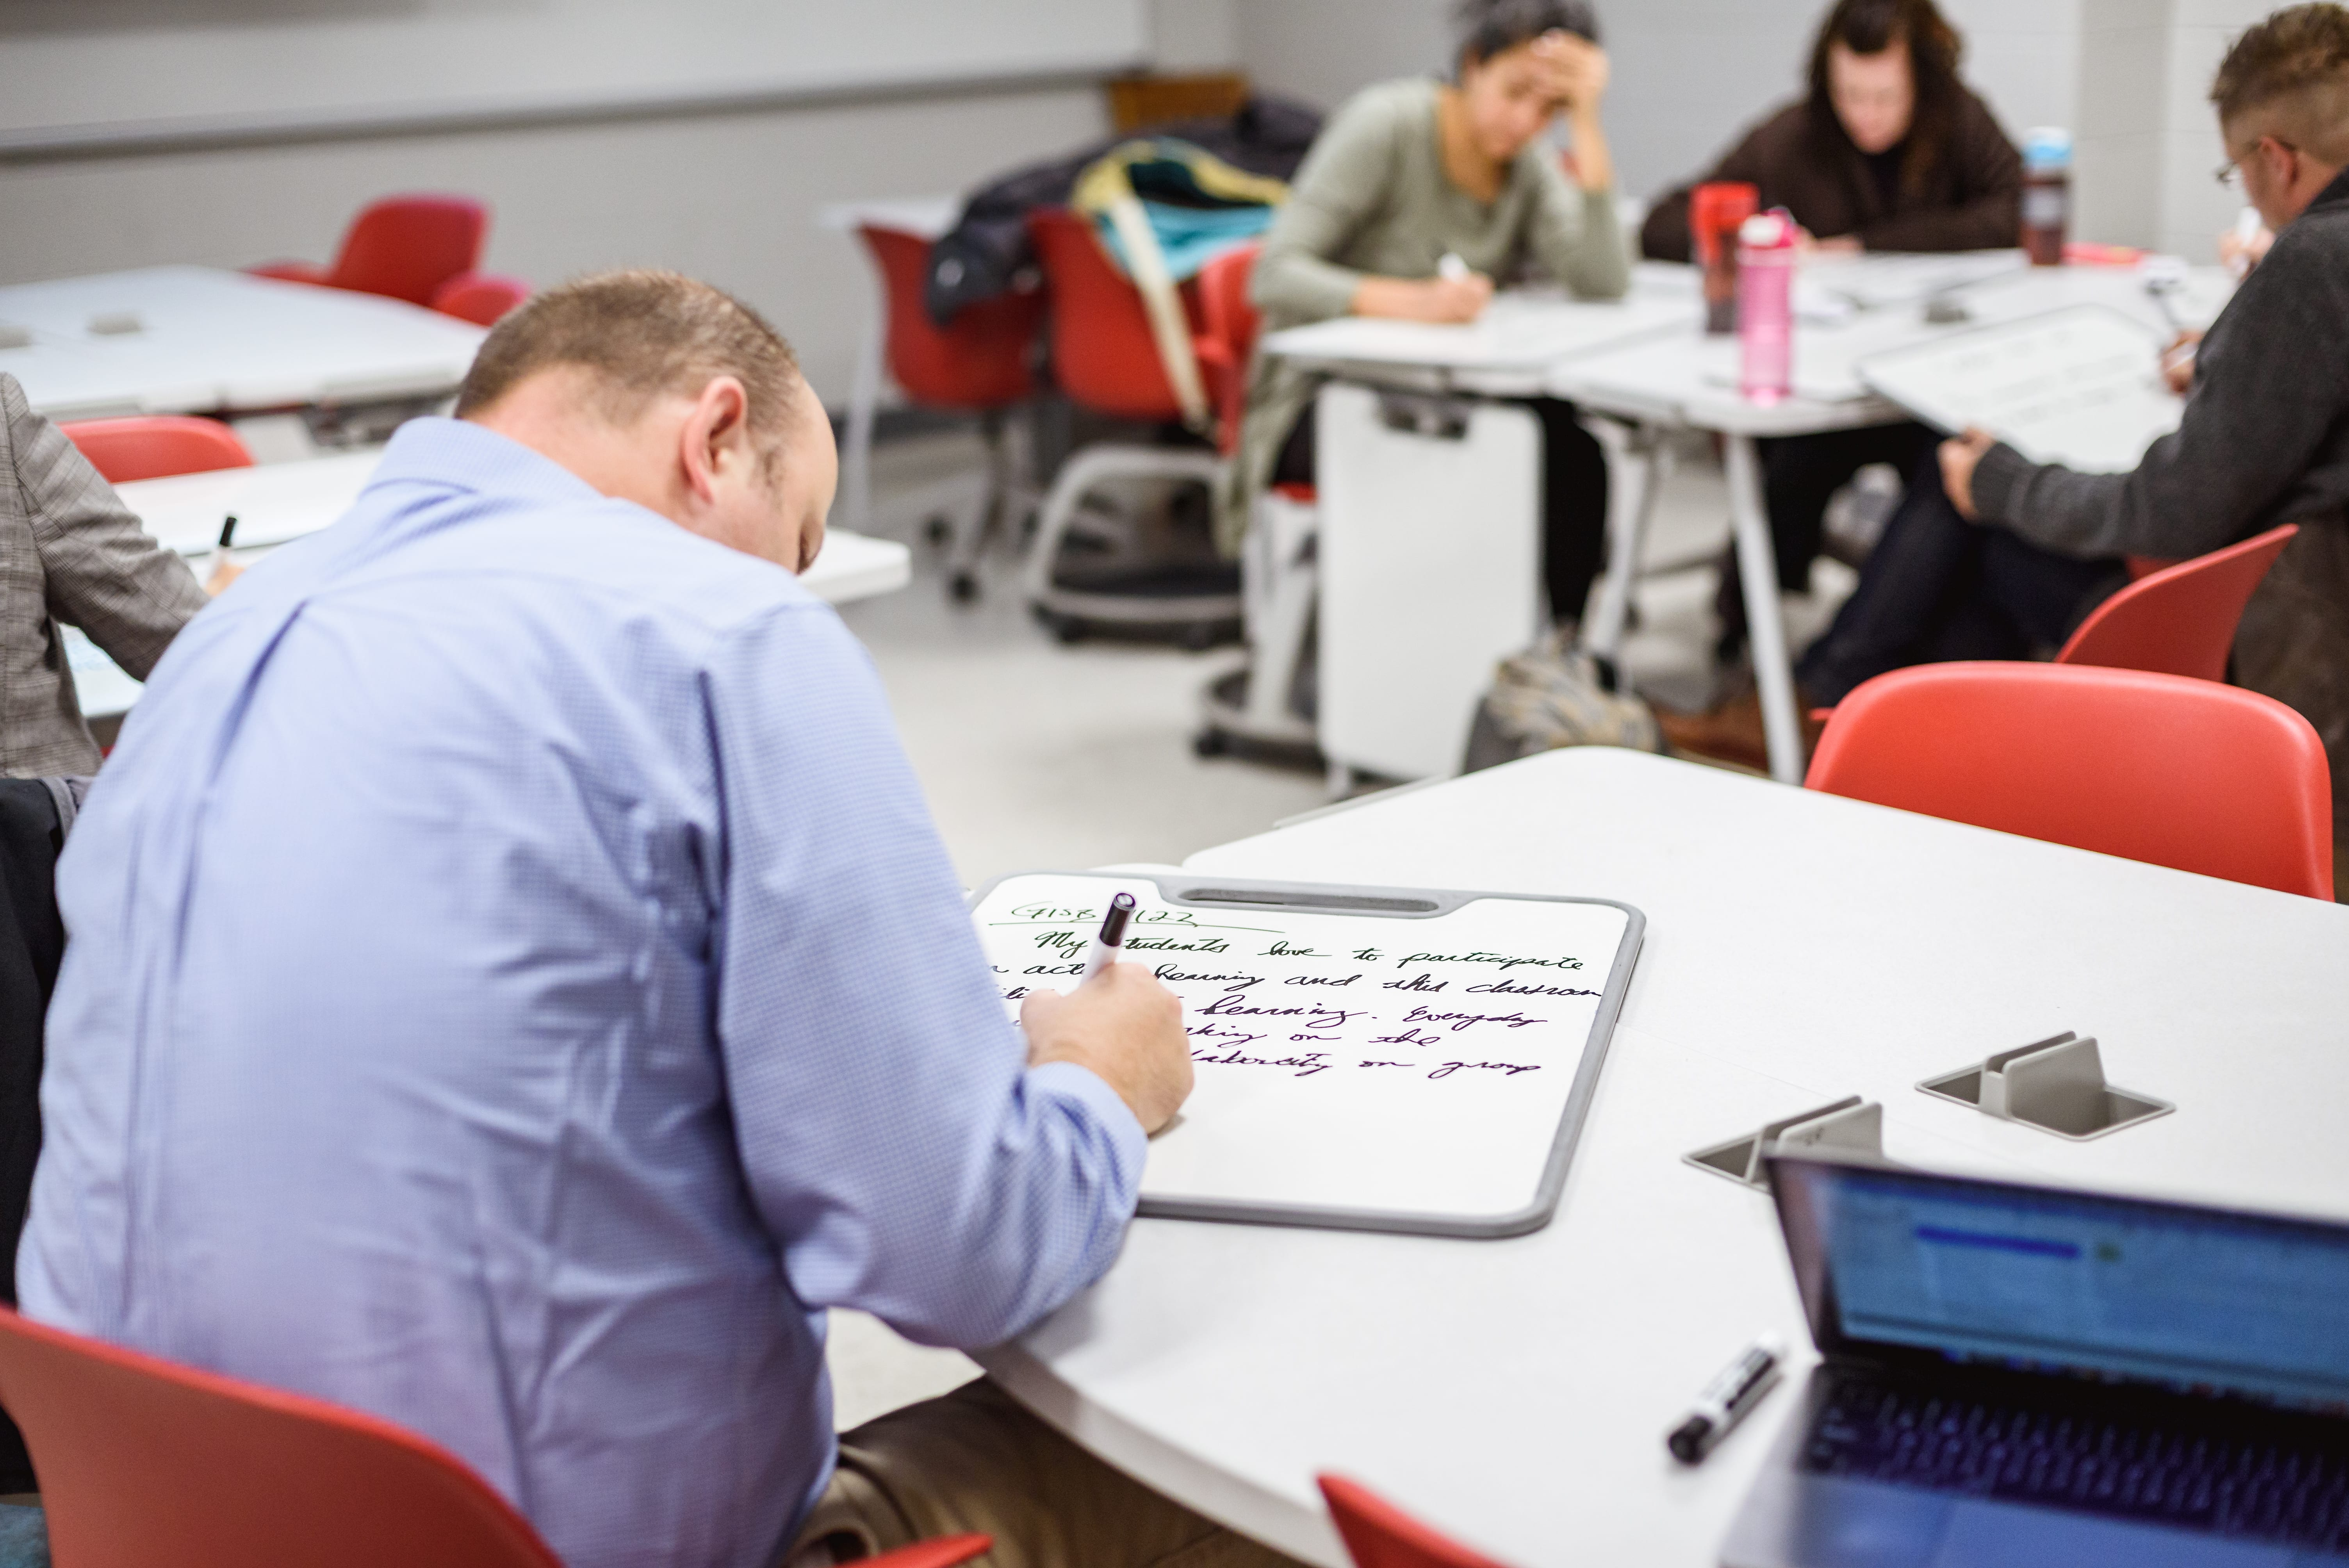 Mosaic Fellow uses Verb board to record individual thoughts